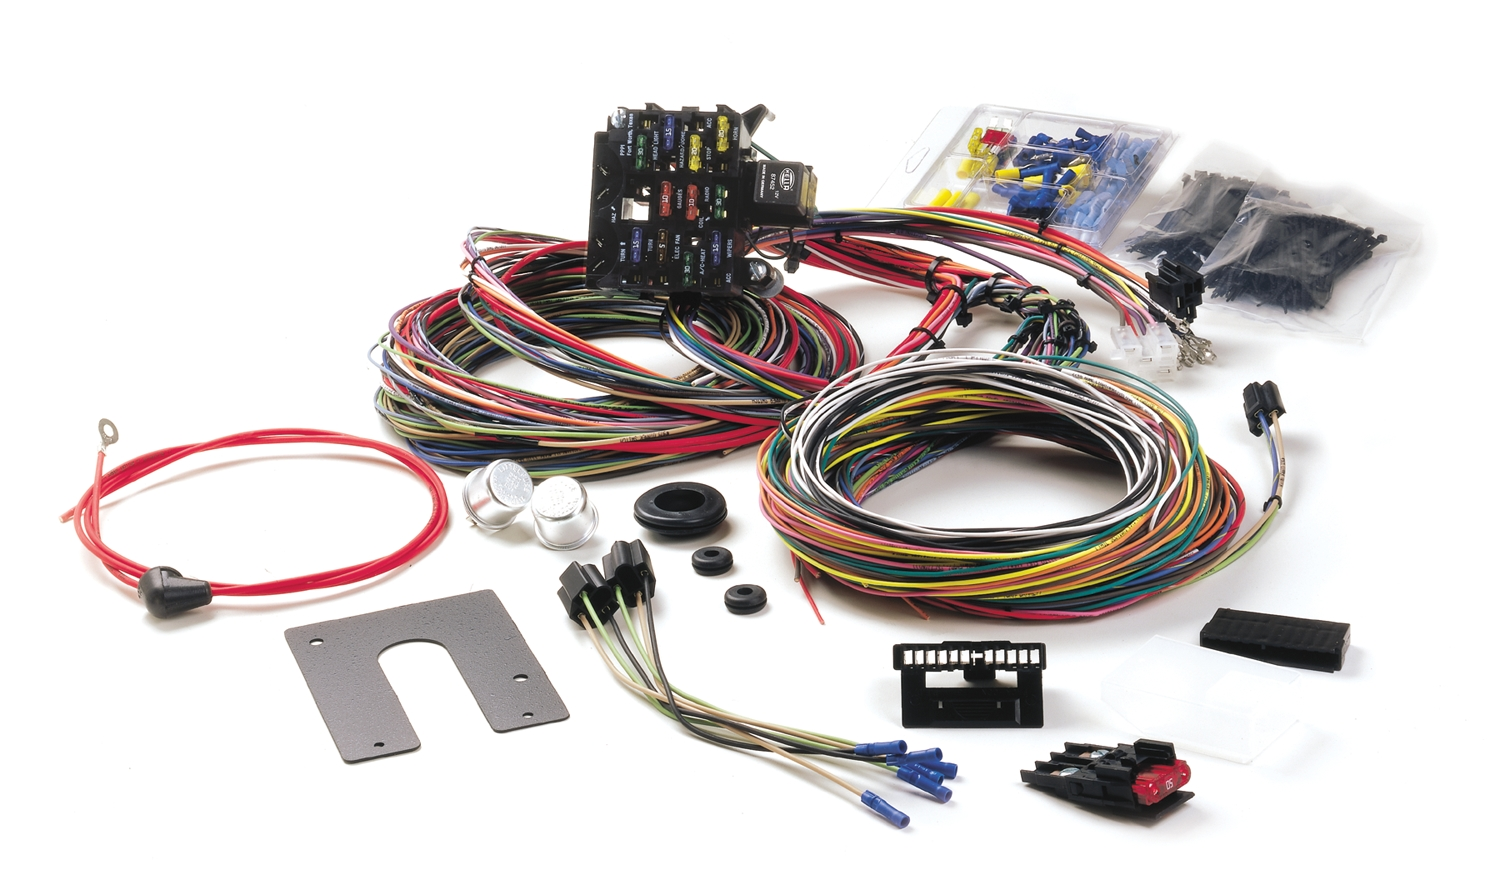 Maxi Fuse Installed Wiring Harness Schematics Diagrams 2000 Mack Diagram Painless Performance Installation In 39 Ford Hotrod Hotline Rh Hotrodhotline Com Peterbilt